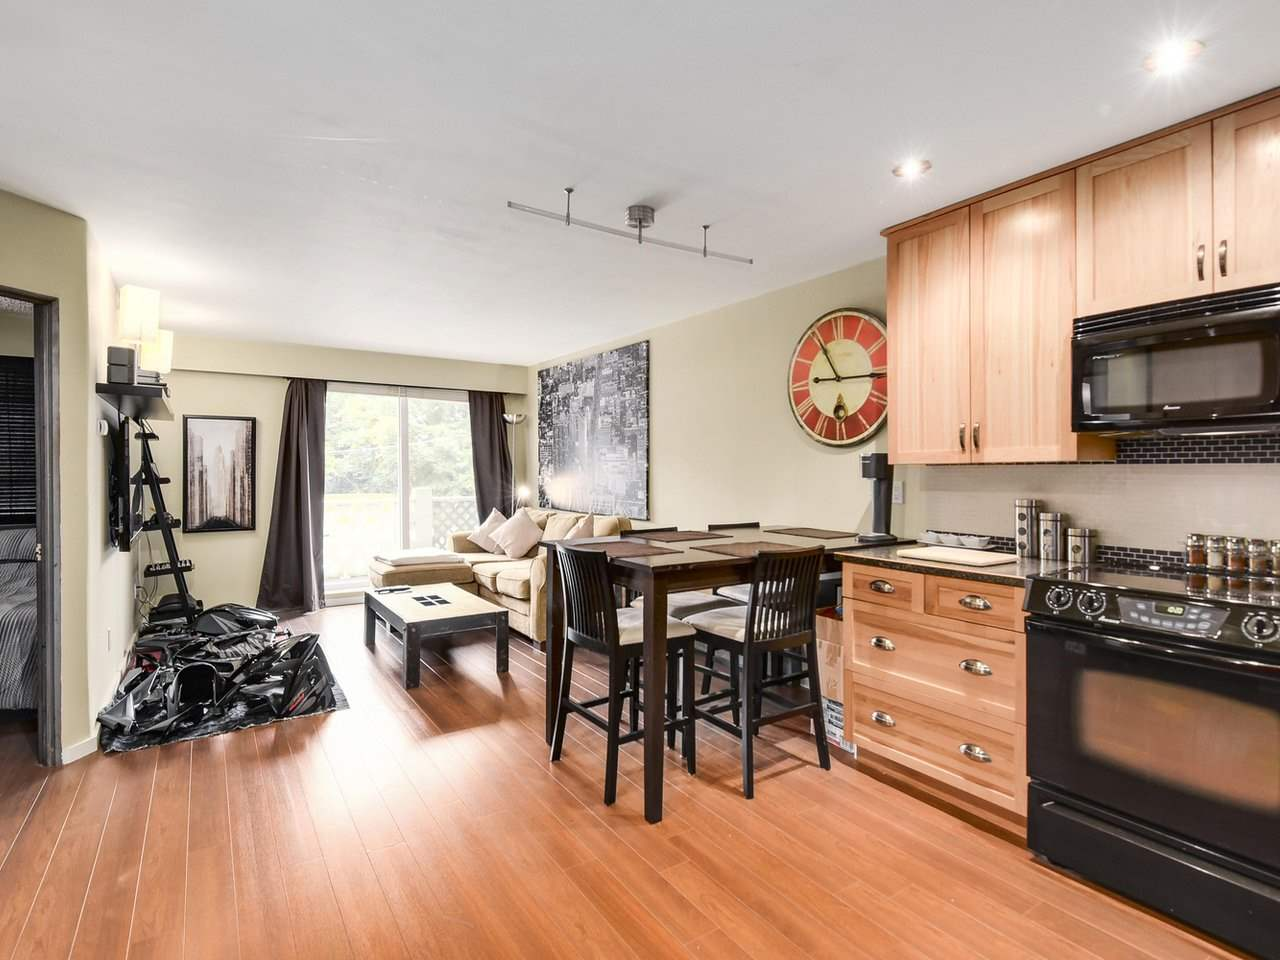 "Photo 2: 102 711 E 6TH Avenue in Vancouver: Mount Pleasant VE Condo for sale in ""Picasso"" (Vancouver East)  : MLS® # R2180358"